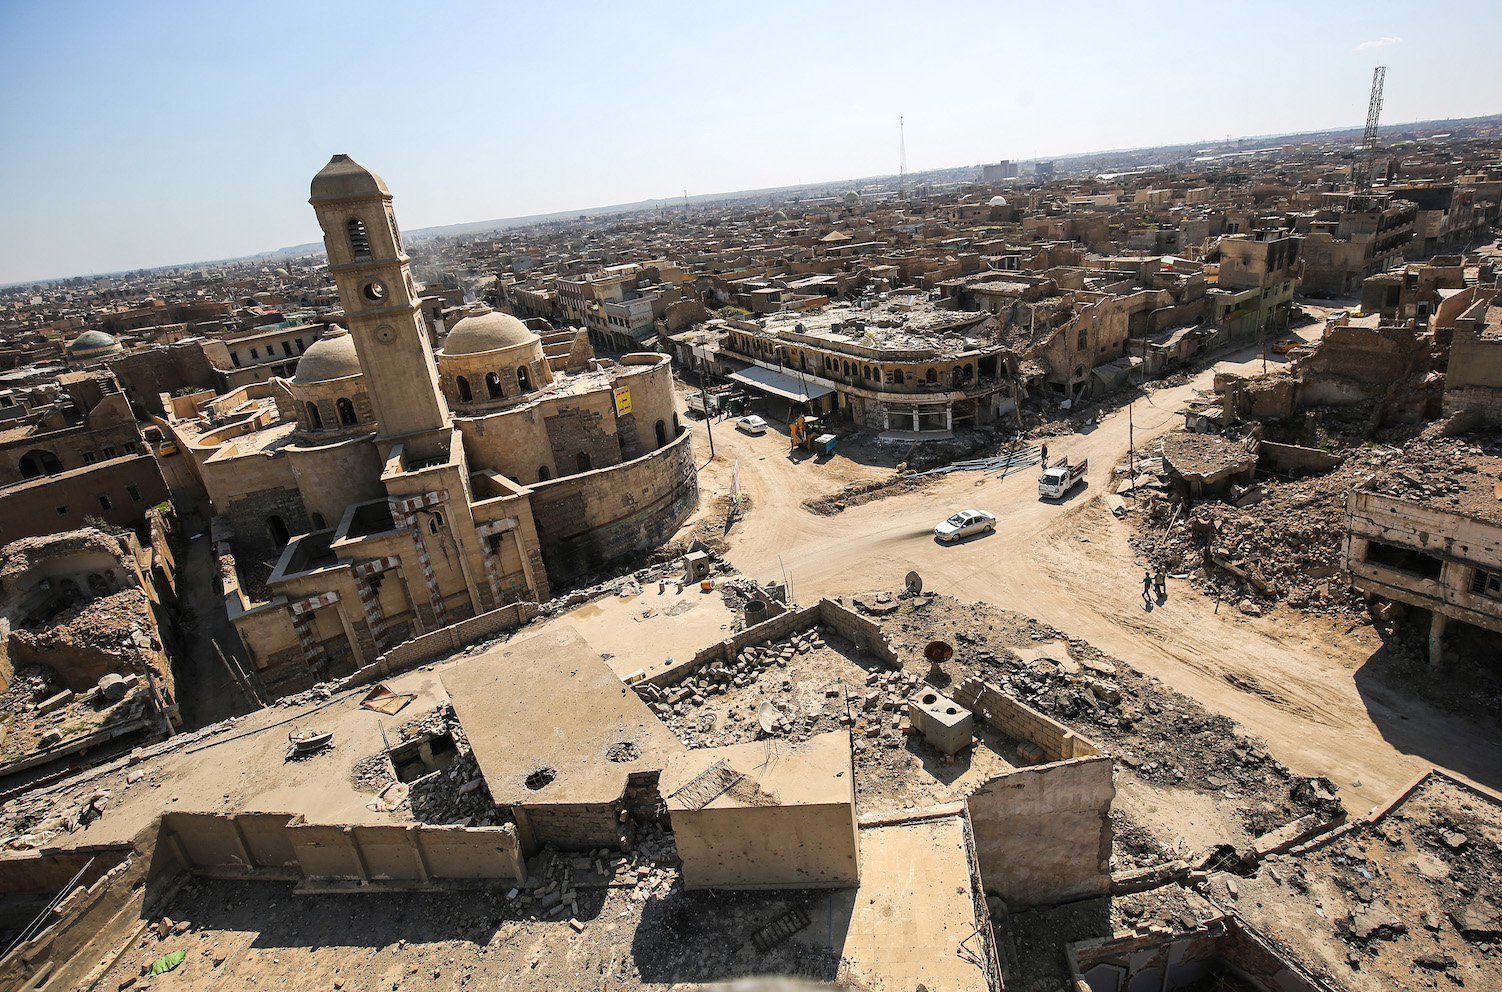 A picture taken on March 14, shows a view of destruction surrounding the Roman Catholic Church of Our Lady of the Hour (l) in the old city of Mosul, eight months after it was retaken by Iraqi government forces from the control of Islamic State (IS) group fighters. / AFP PHOTO / AHMAD AL-RUBAYE        (Photo credit should read AHMAD AL-RUBAYE/AFP/Getty Images)